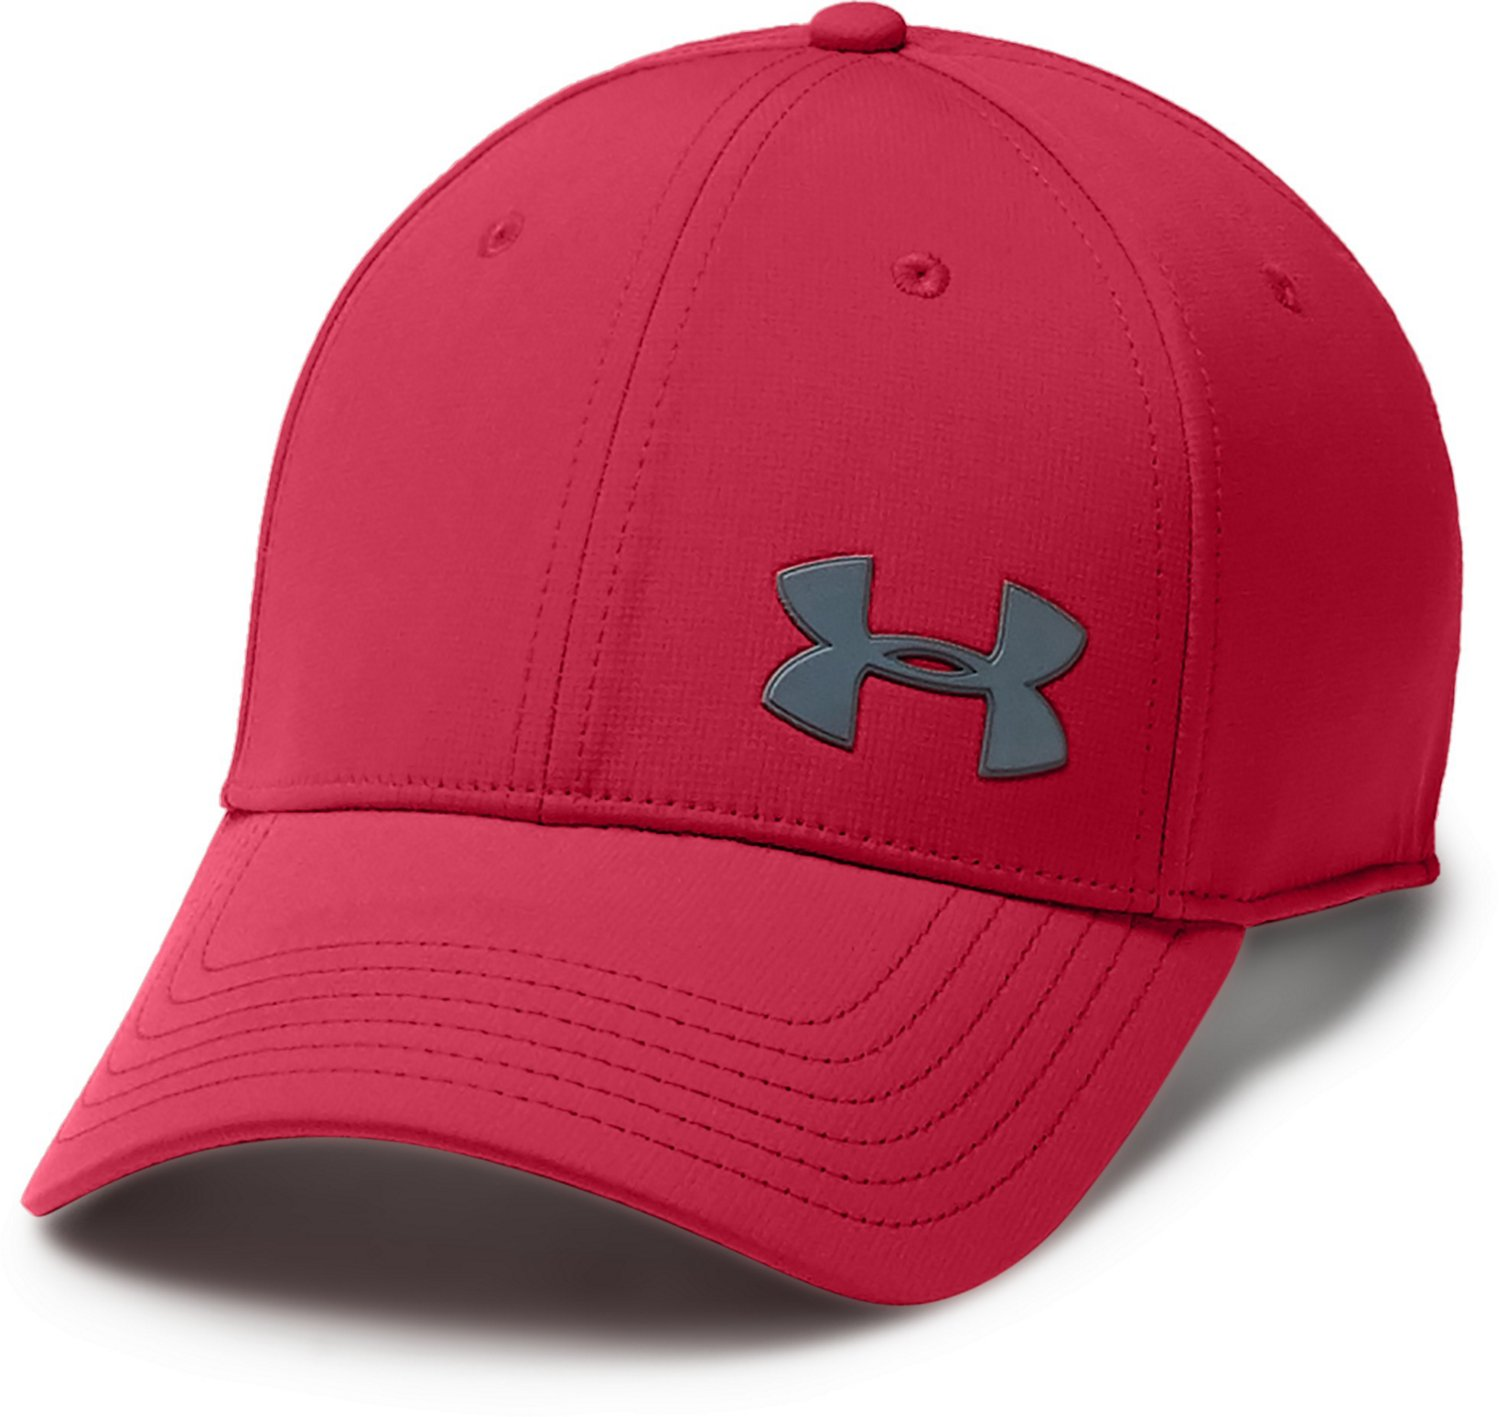 ffd729b4f03f Display product reviews for Under Armour Men's Headline 3.0 Cap